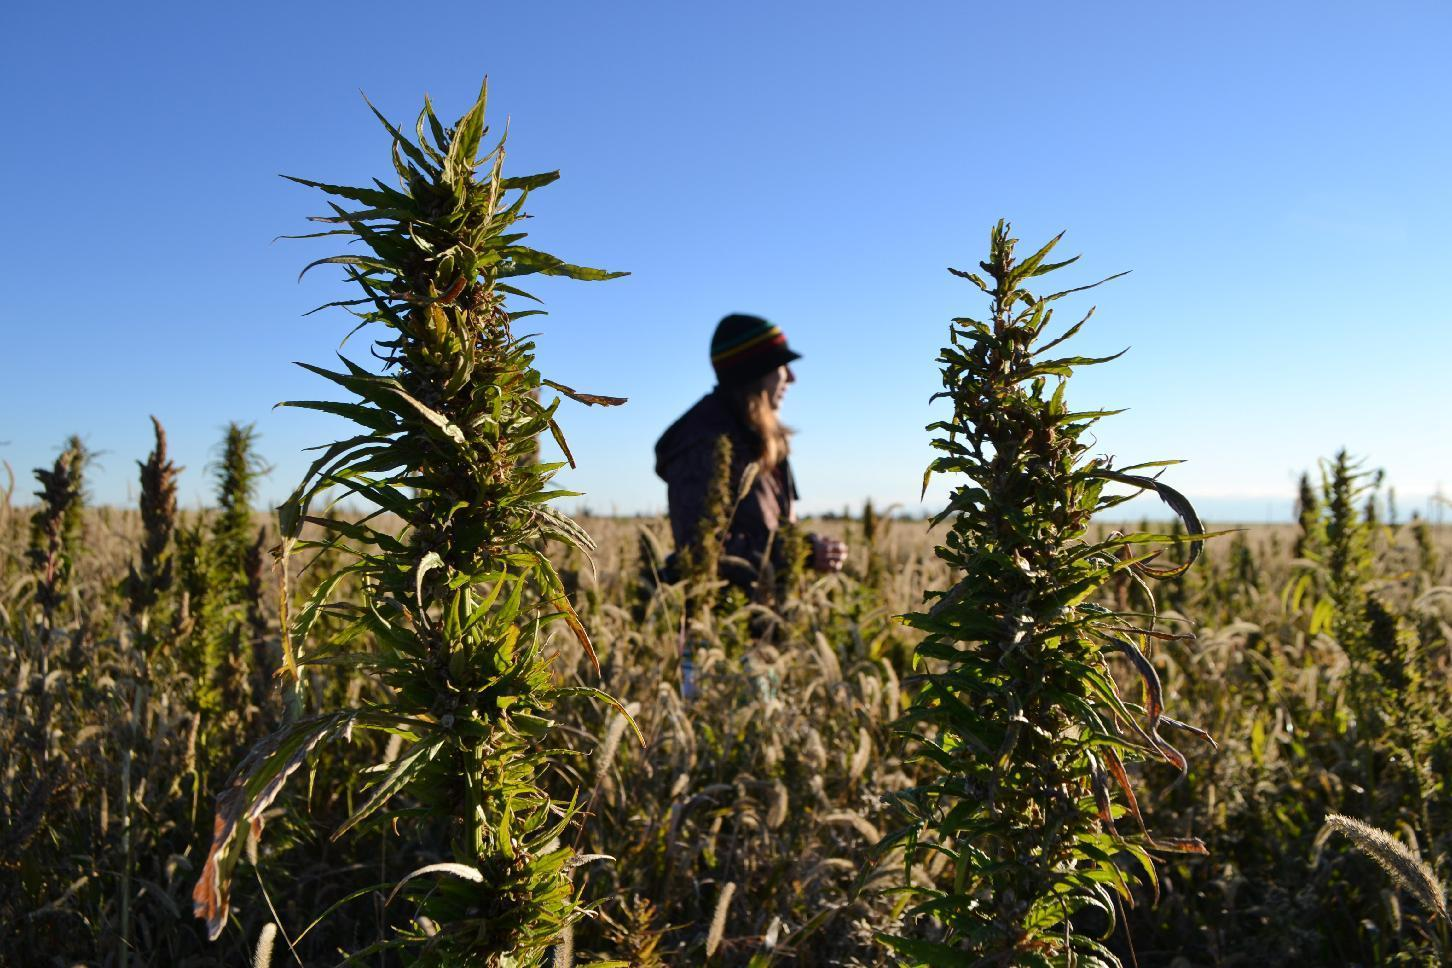 Oregon hemp farmer says startup going slow